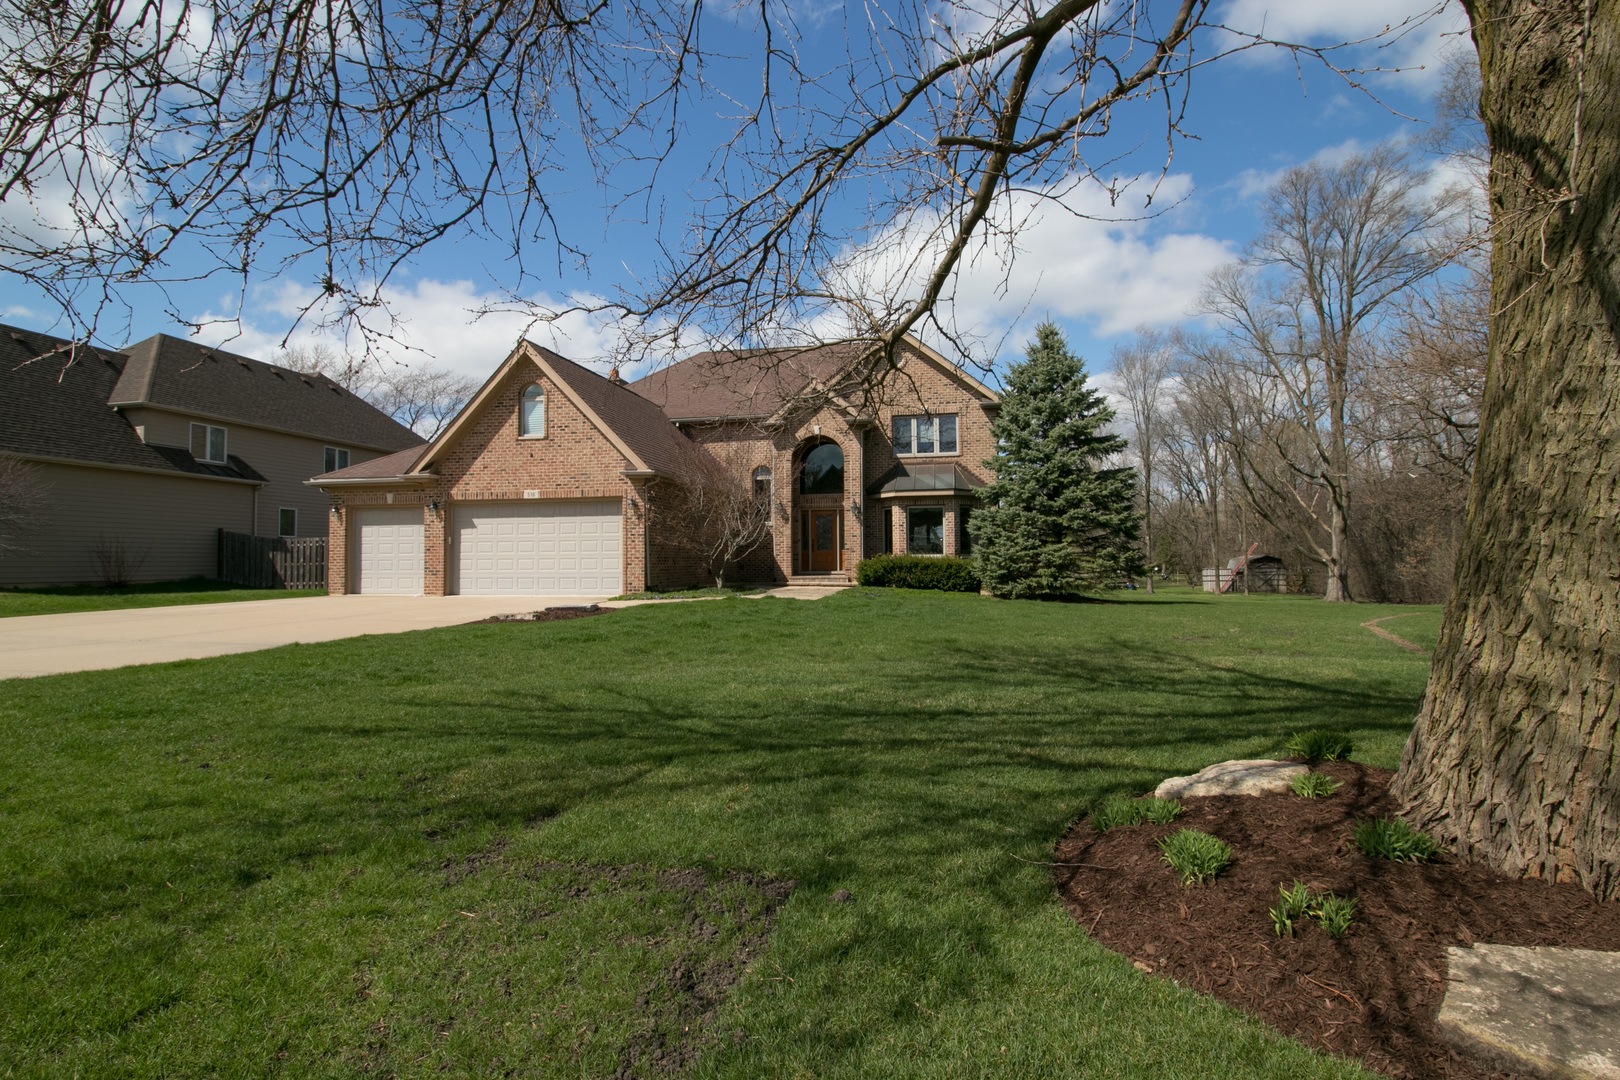 "Nestled on a quiet street on a double lot, this custom built home has everything! From the moment you walk in the two story foyer, you will love the generous room sizes and thoughtful design. Open kitchen with granite counters, double ovens, breakfast bar and sunny eating area spills into inviting family room with brick fireplace. Luxury master suite boasts whirlpool tub, separate shower, his and her walk-in closets. 2nd BR features full bath and walk-in closet, custom organizers in all closets! Spectacular basement includes rec room with fireplace, wet bar, workout area, full bath with walk-in shower, 5th bedroom, and huge storage area. First floor office has walk-in closet, and oversized first floor laundry has large closet, lots of cabinets, and a large fridge, too. Generator, plus too many ""news""! Park-like lot is over an acre and zoned for equestrian use, and includes a fire pit, attached three car garage, and large deck. Lot can be subdivided. Great location close to schools, sho"